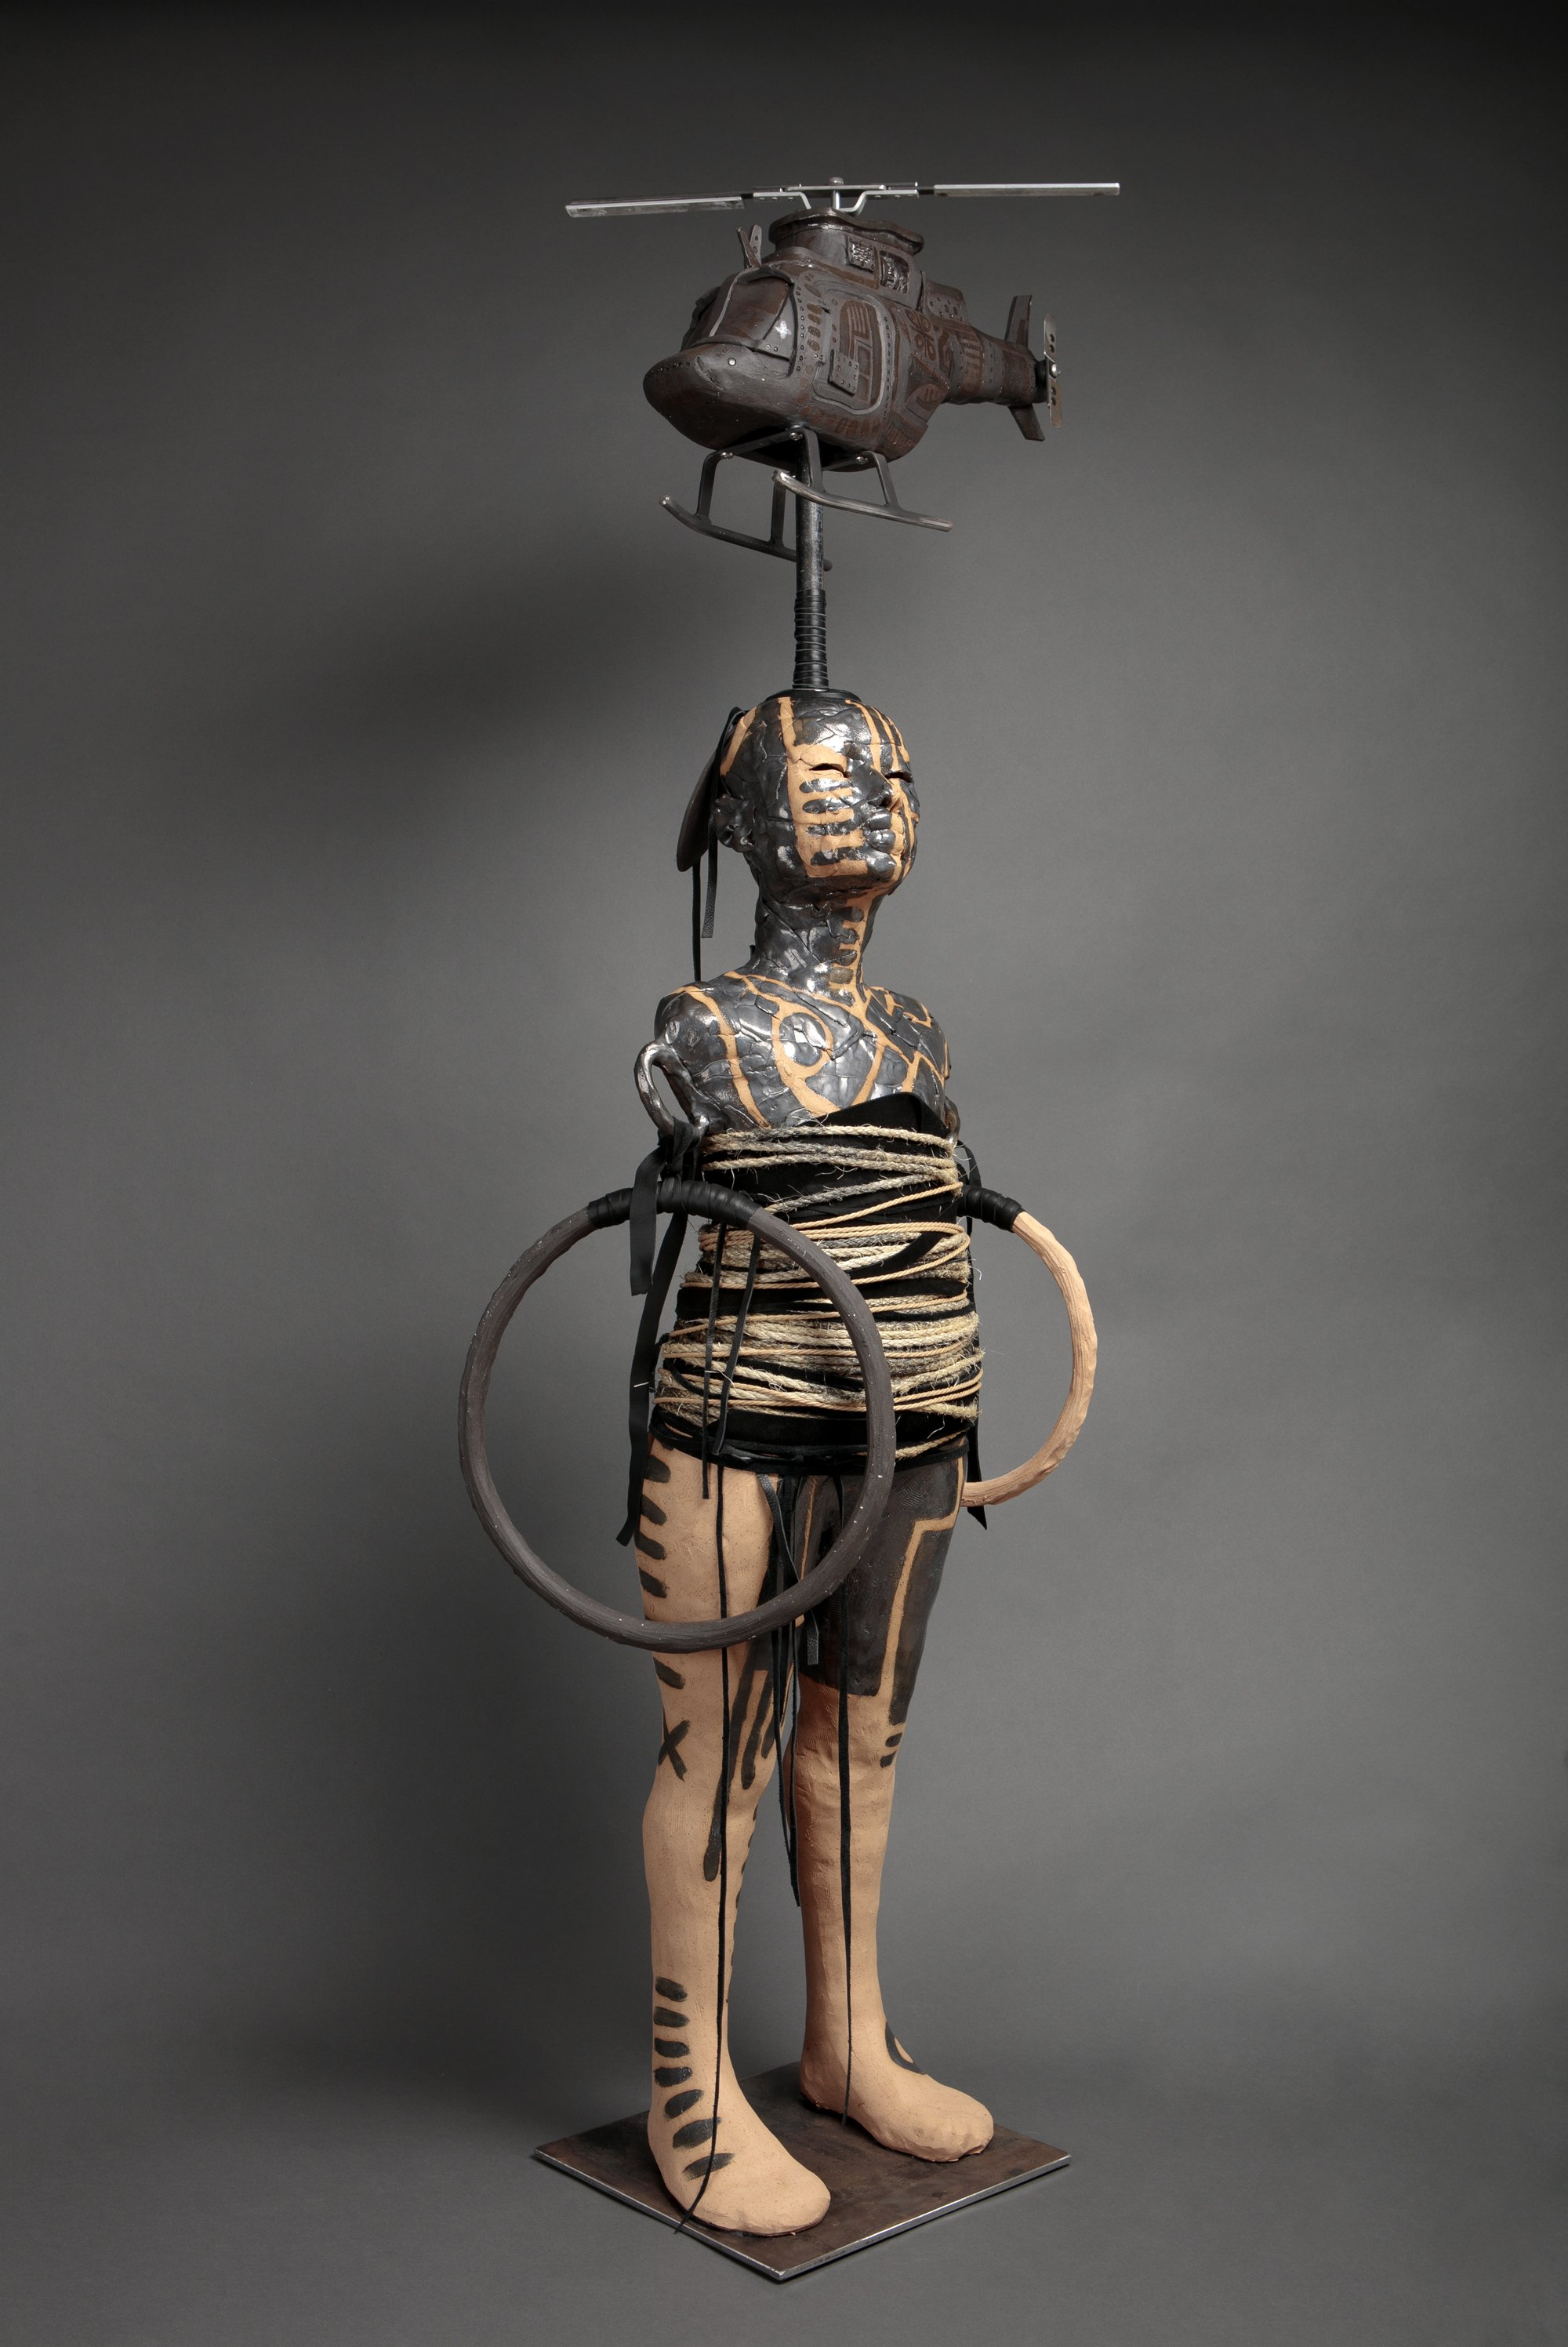 """Dream Machine"" by Rose B. Simpson, 62"" x 22"" x 18"" ceramic, steel, leather and rope, 2016"